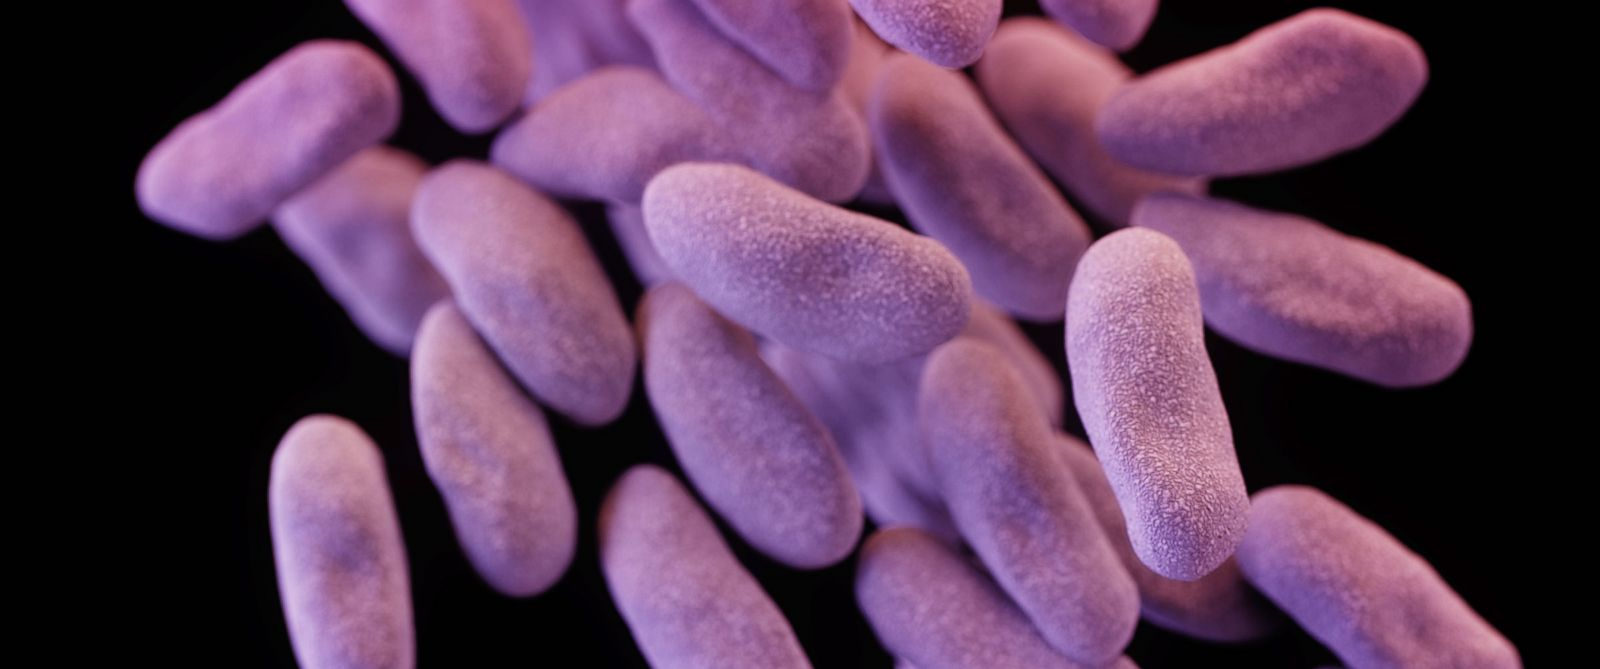 What You Need to Know About the Deadly Superbug Infection ...